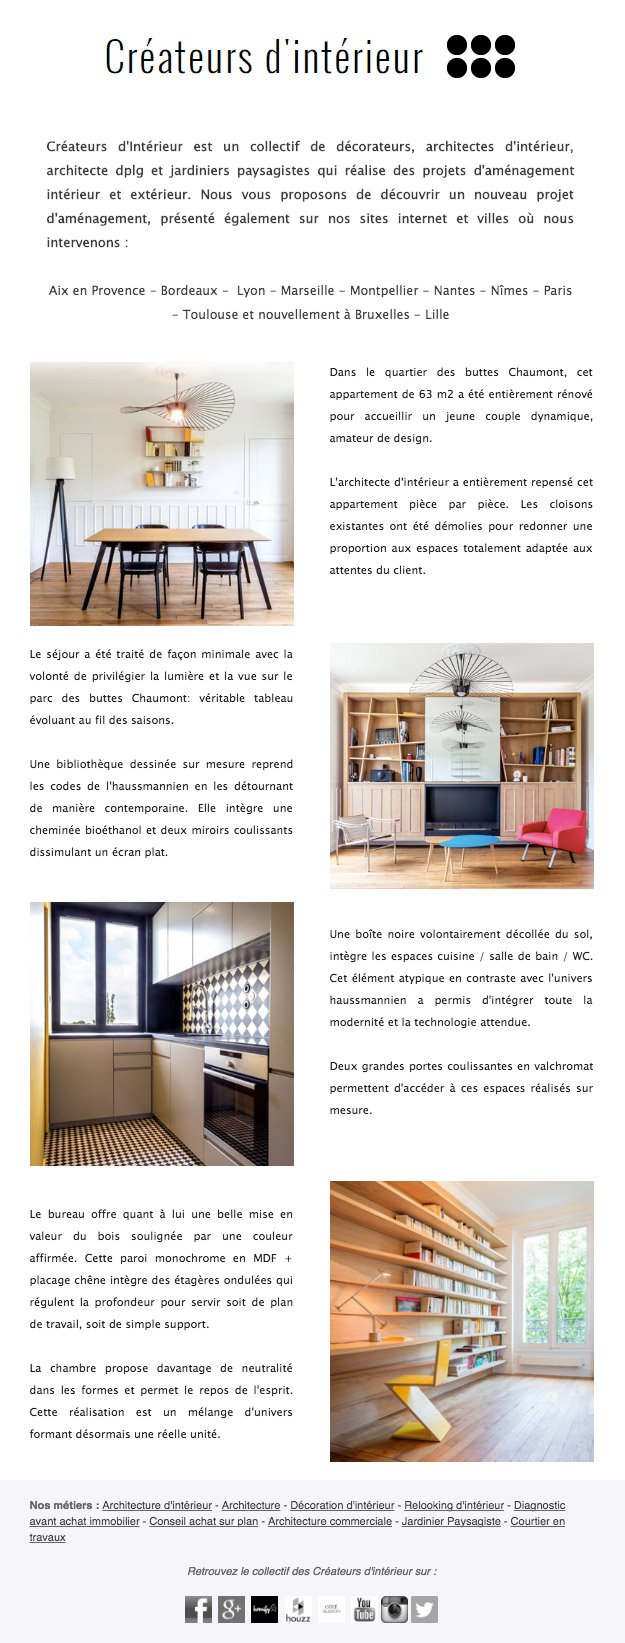 Les magazines de d coration voquent les r alisations d 39 un for Magazine decoration interieur